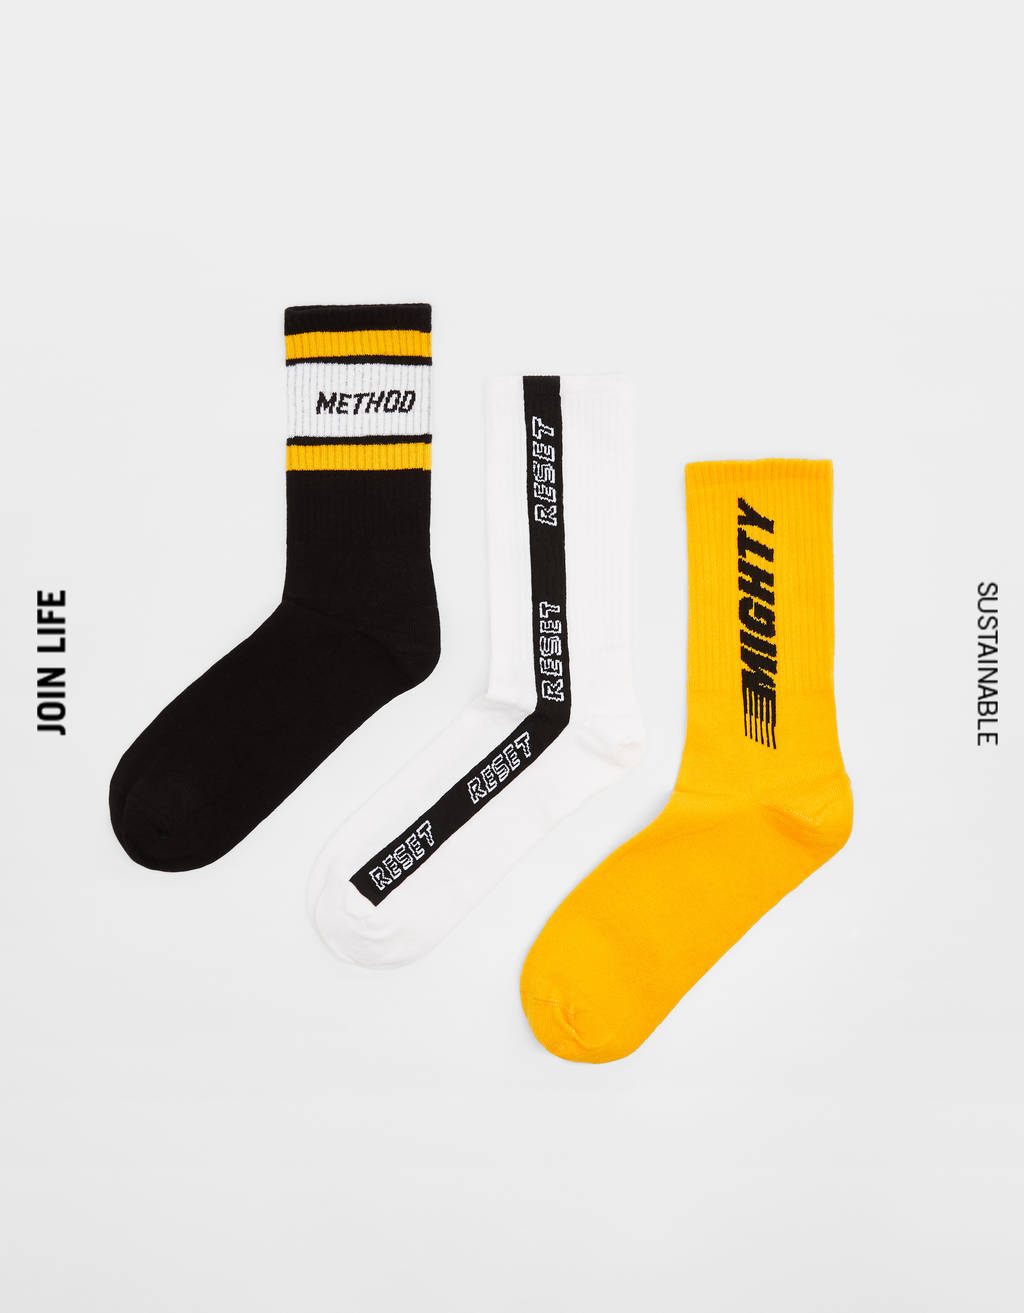 Pack of socks with slogan